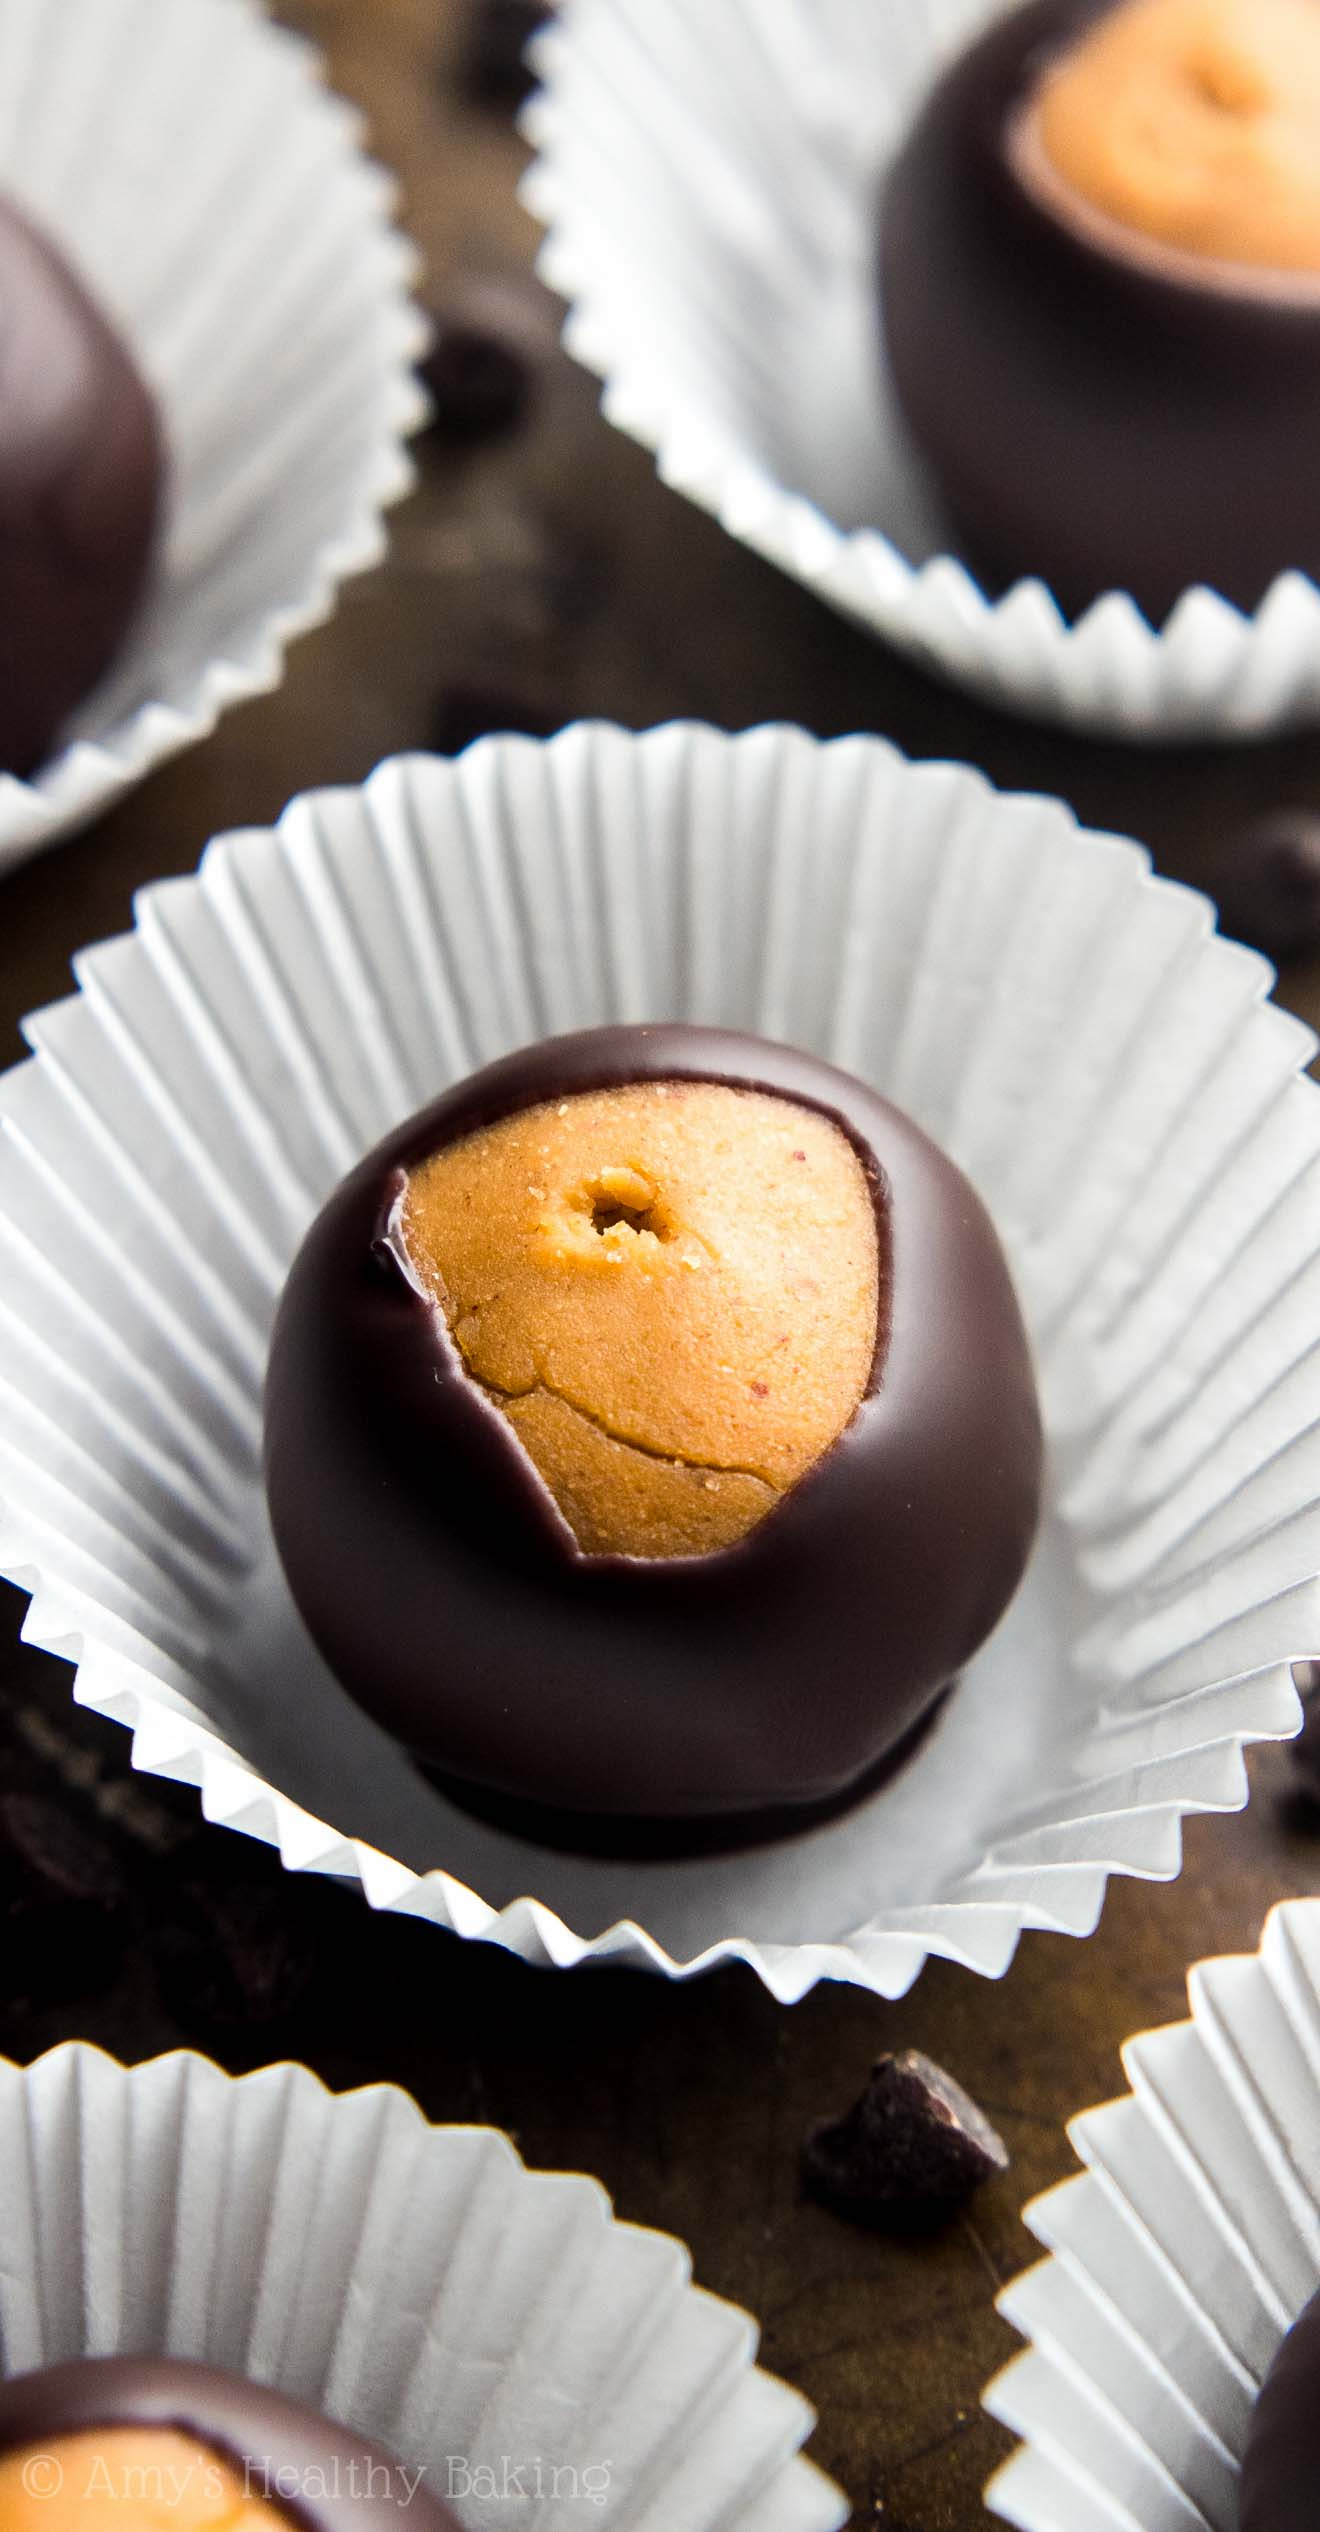 GUILT-FREE CANDY! So easy to make, nearly 3g of protein & perfect for the holidays! Chocolate + peanut butter = the perfect combo!